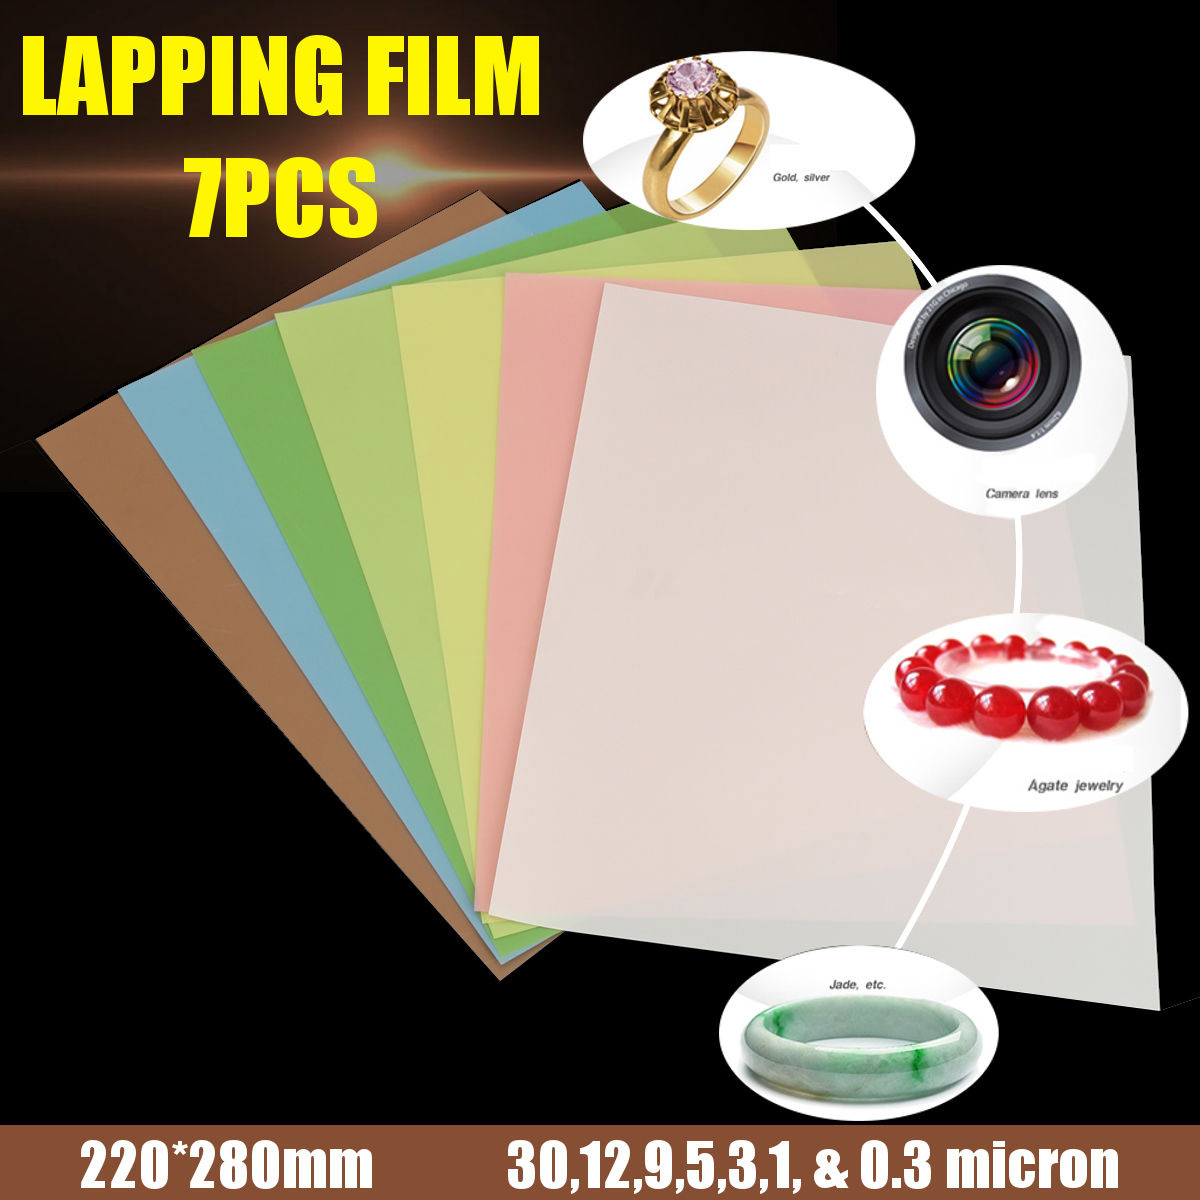 7PCS 8.7'' X 11'' Lapping Film Sheets 1 Each Of 30,12,9,5,3,1, & 0.3 Brand New And High Quality